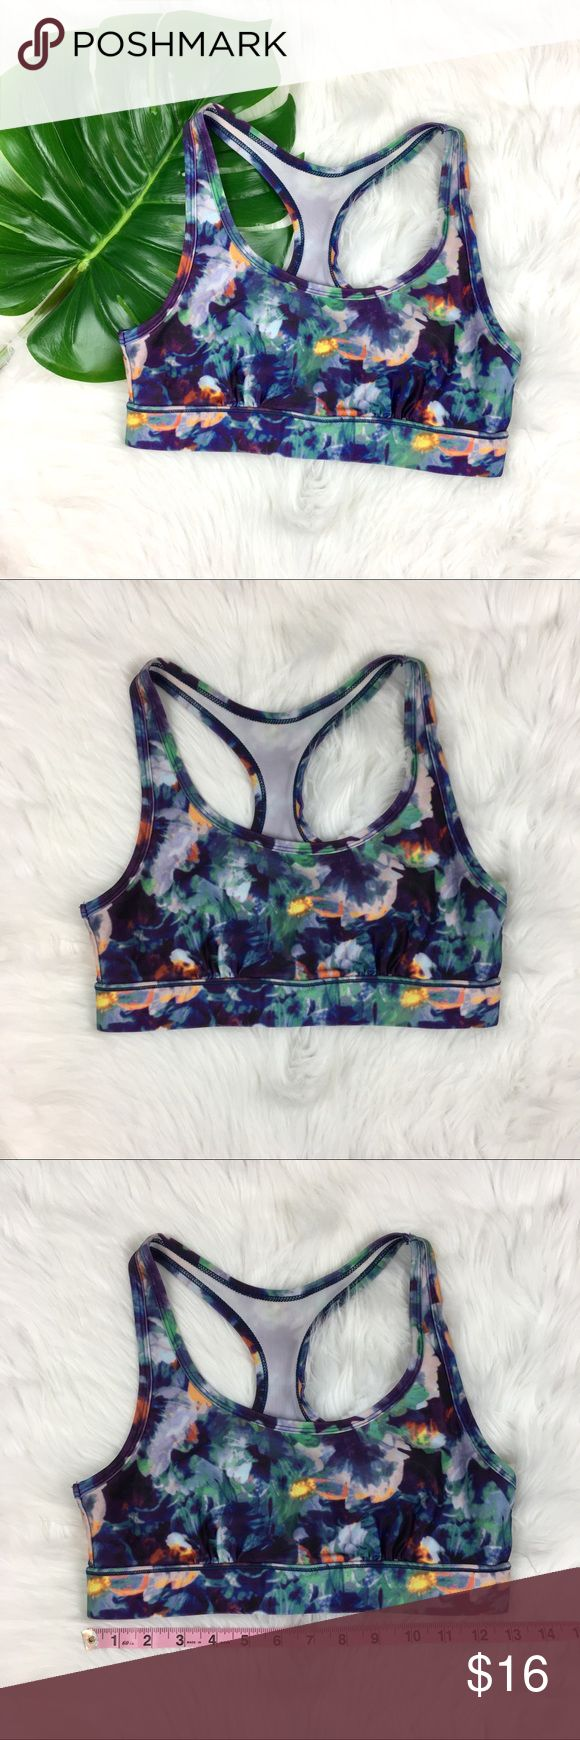 American Eagle NWOT Floral Sports Bra American Eagle flora print sports bra. Size small. It is NWOT no major flaws.   ❌I do not Trade 🙅🏻 Or model💲 Posh Transactions ONLY American Eagle Outfitters Intimates & Sleepwear Bras